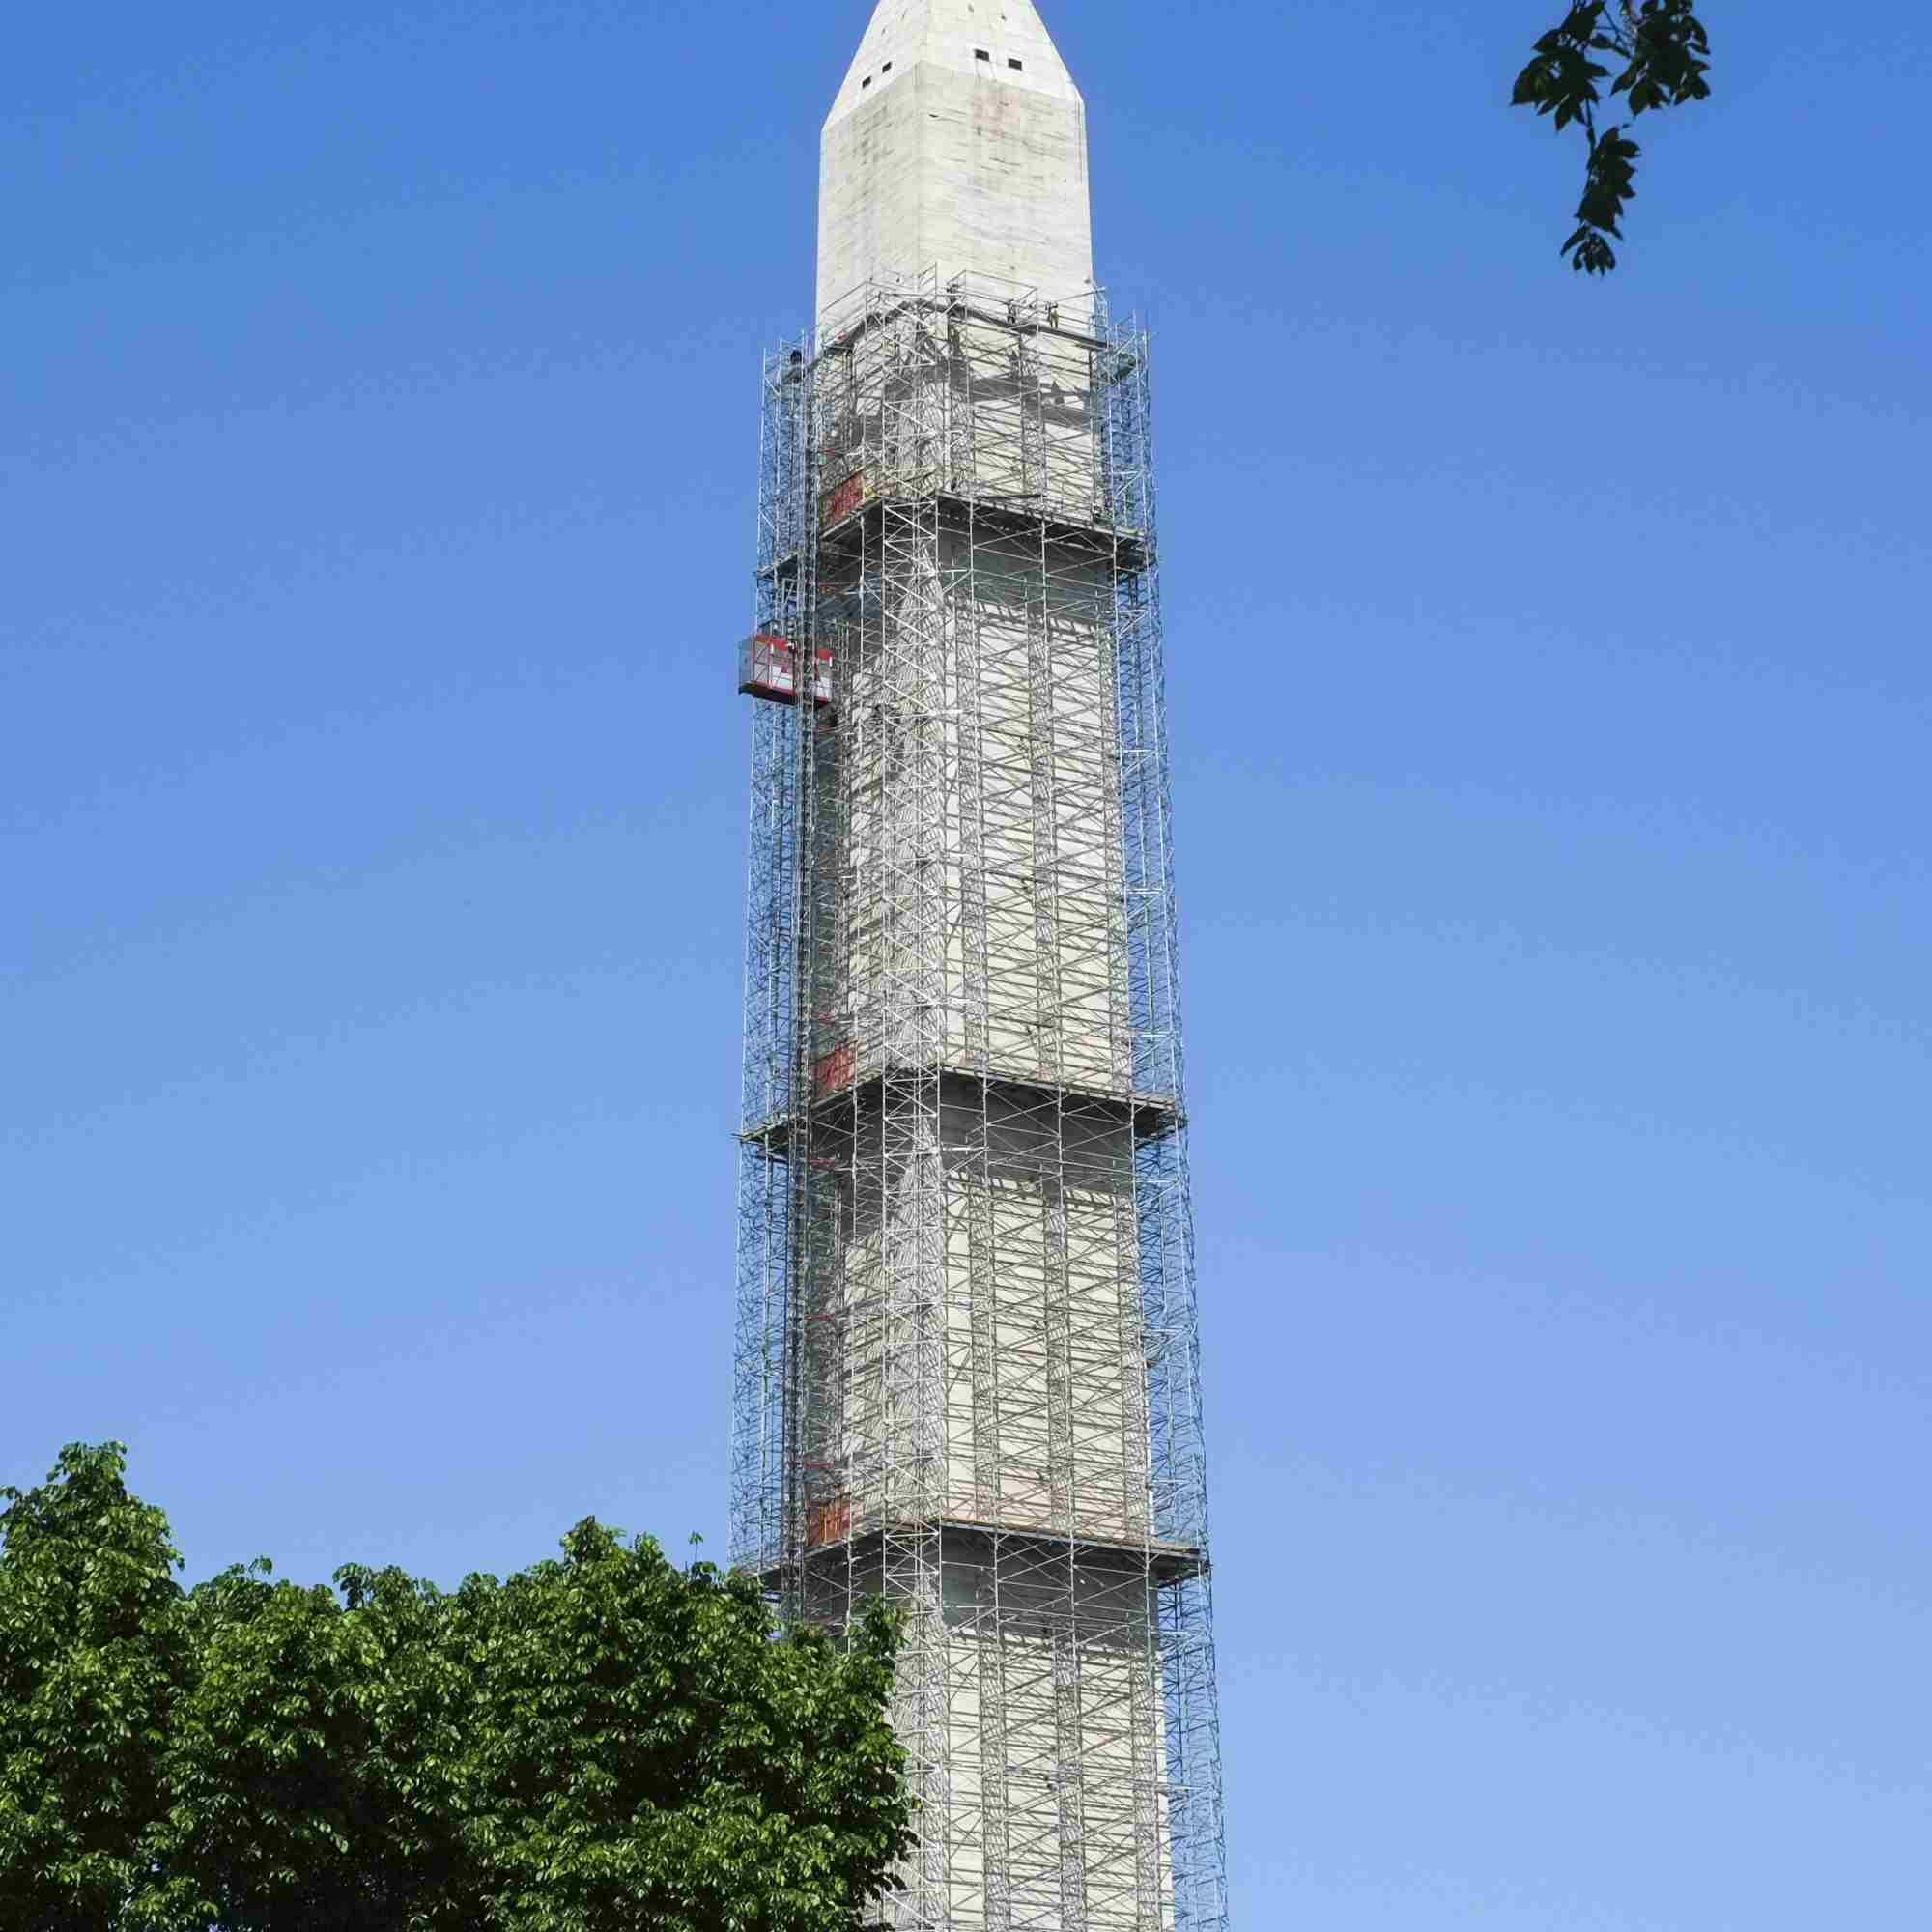 The Washington Monument is covered in scaffolding to repair earthquake damage